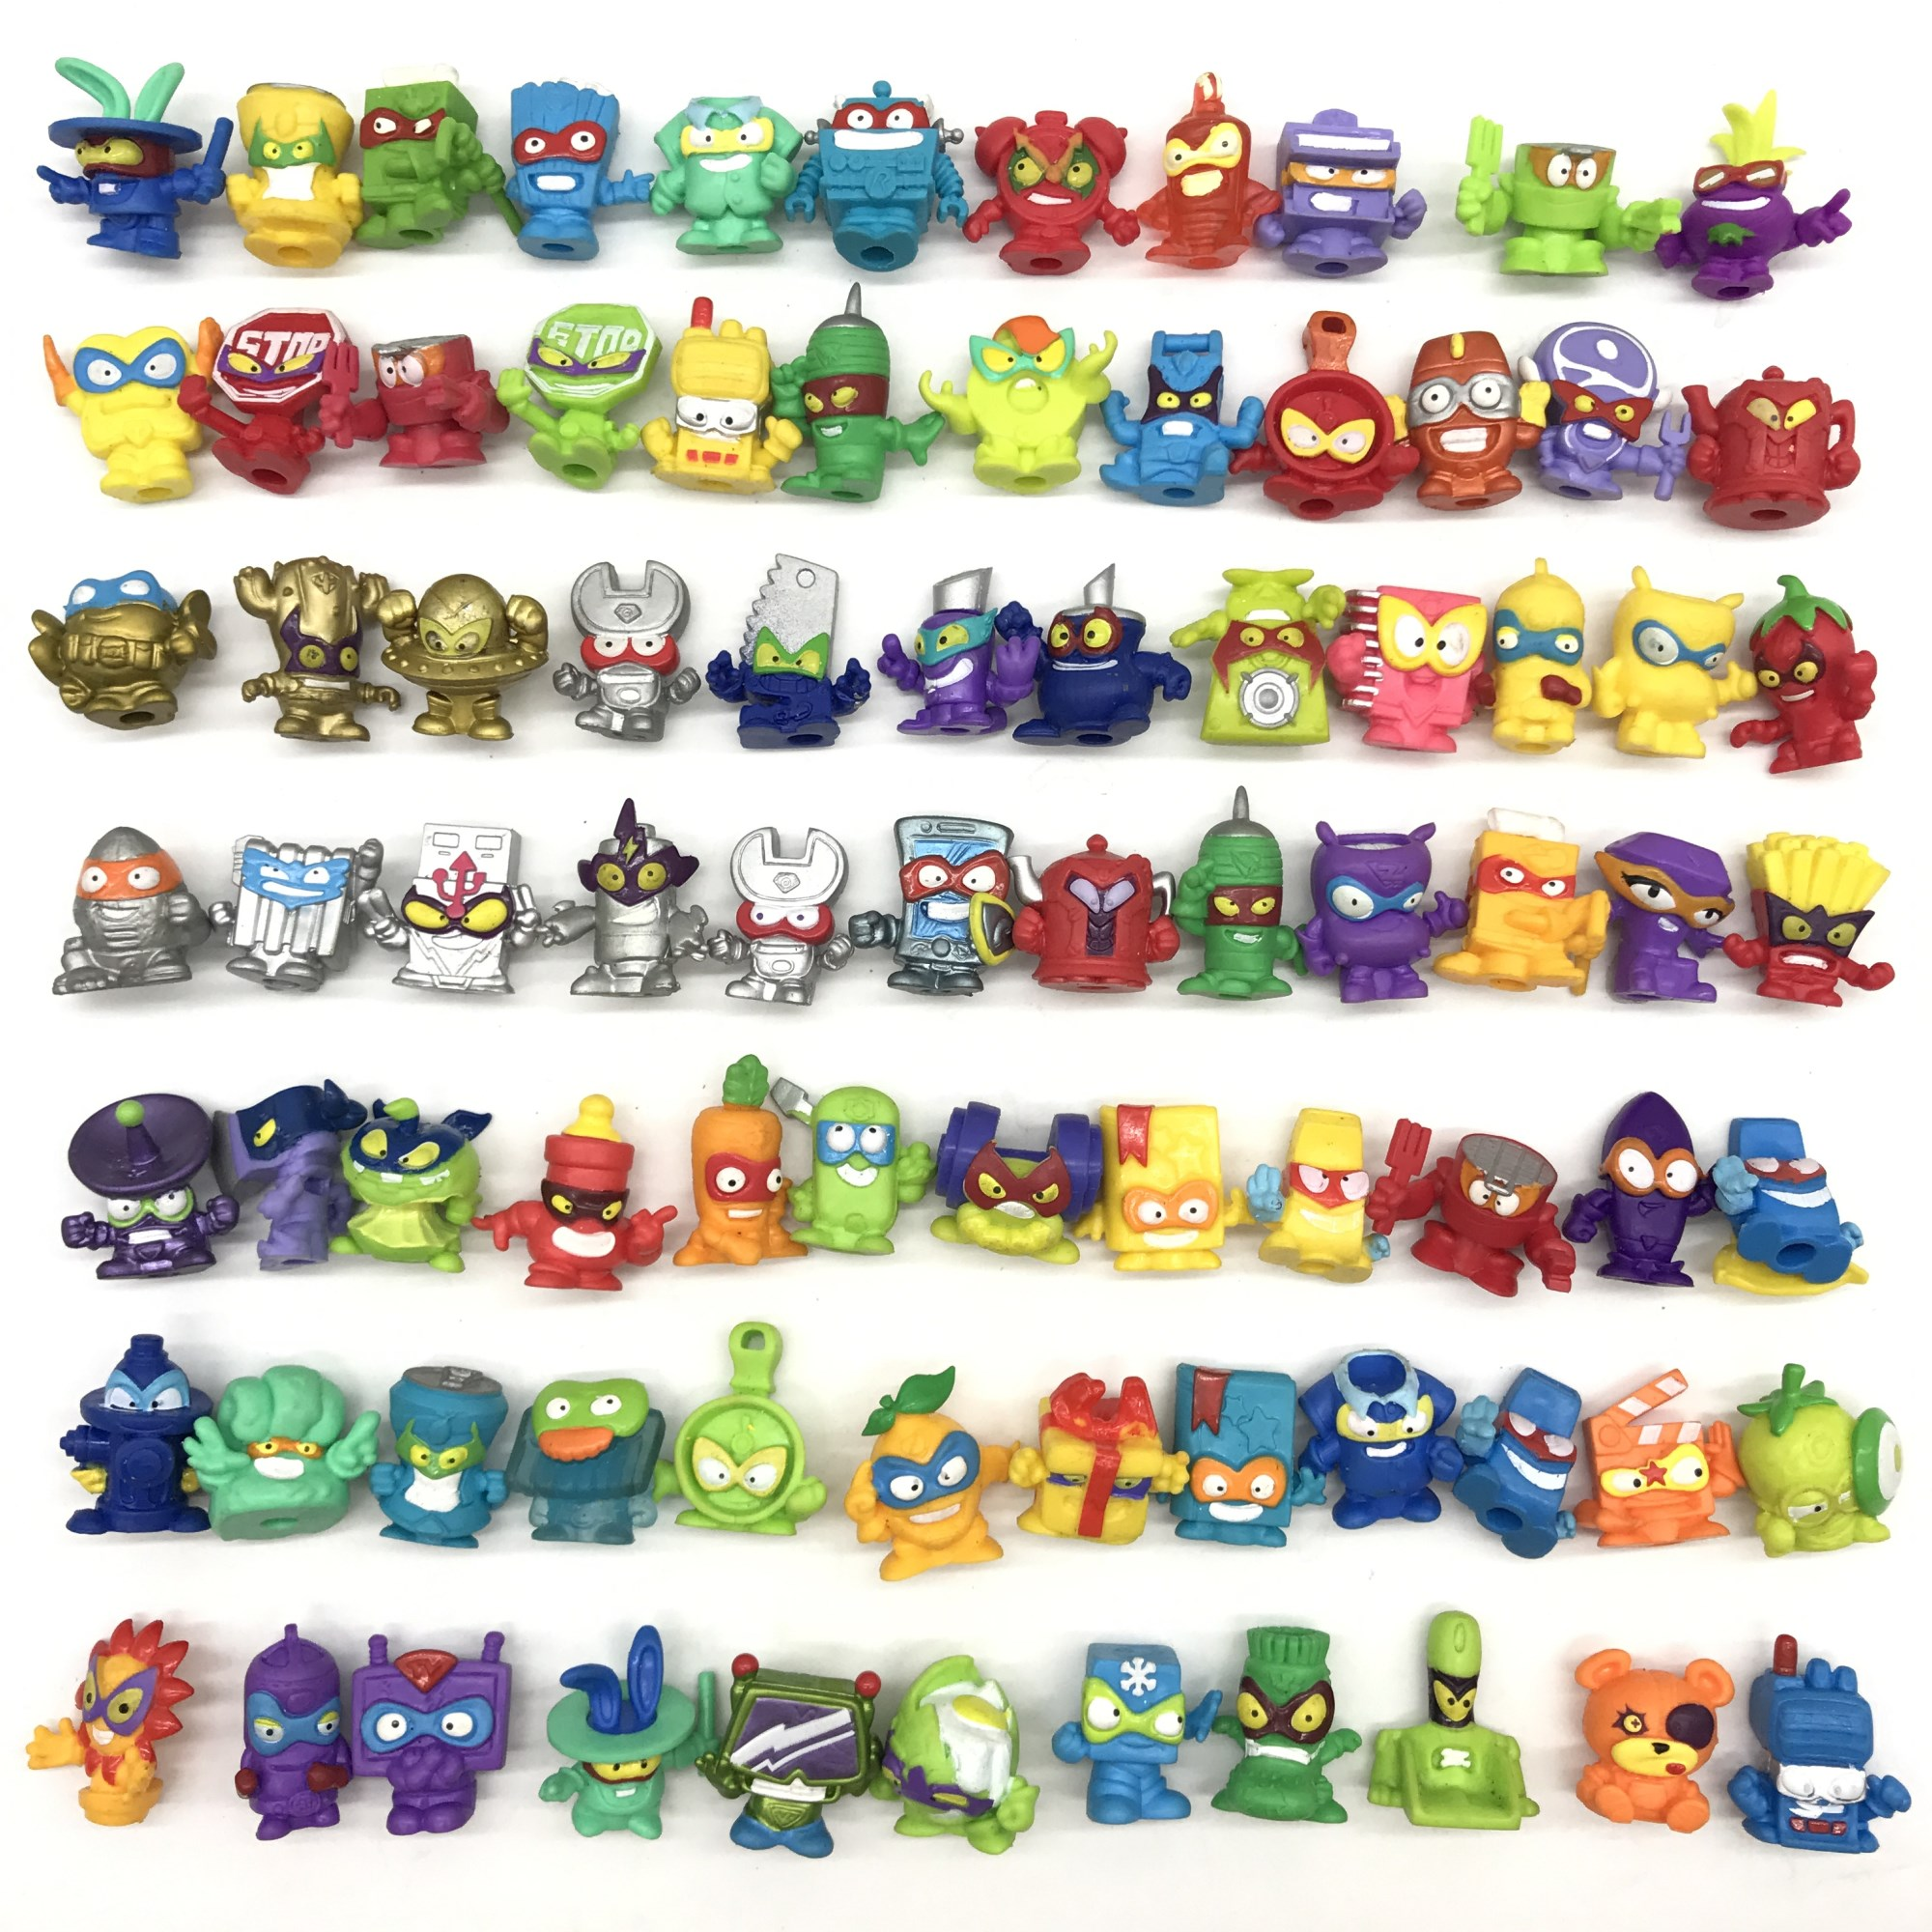 20pcs Superzings Series 1 2 3 Garbage Rubber Cartoon Anime Action Figures Toy Collection Model Rubber Toy For Kids Gift